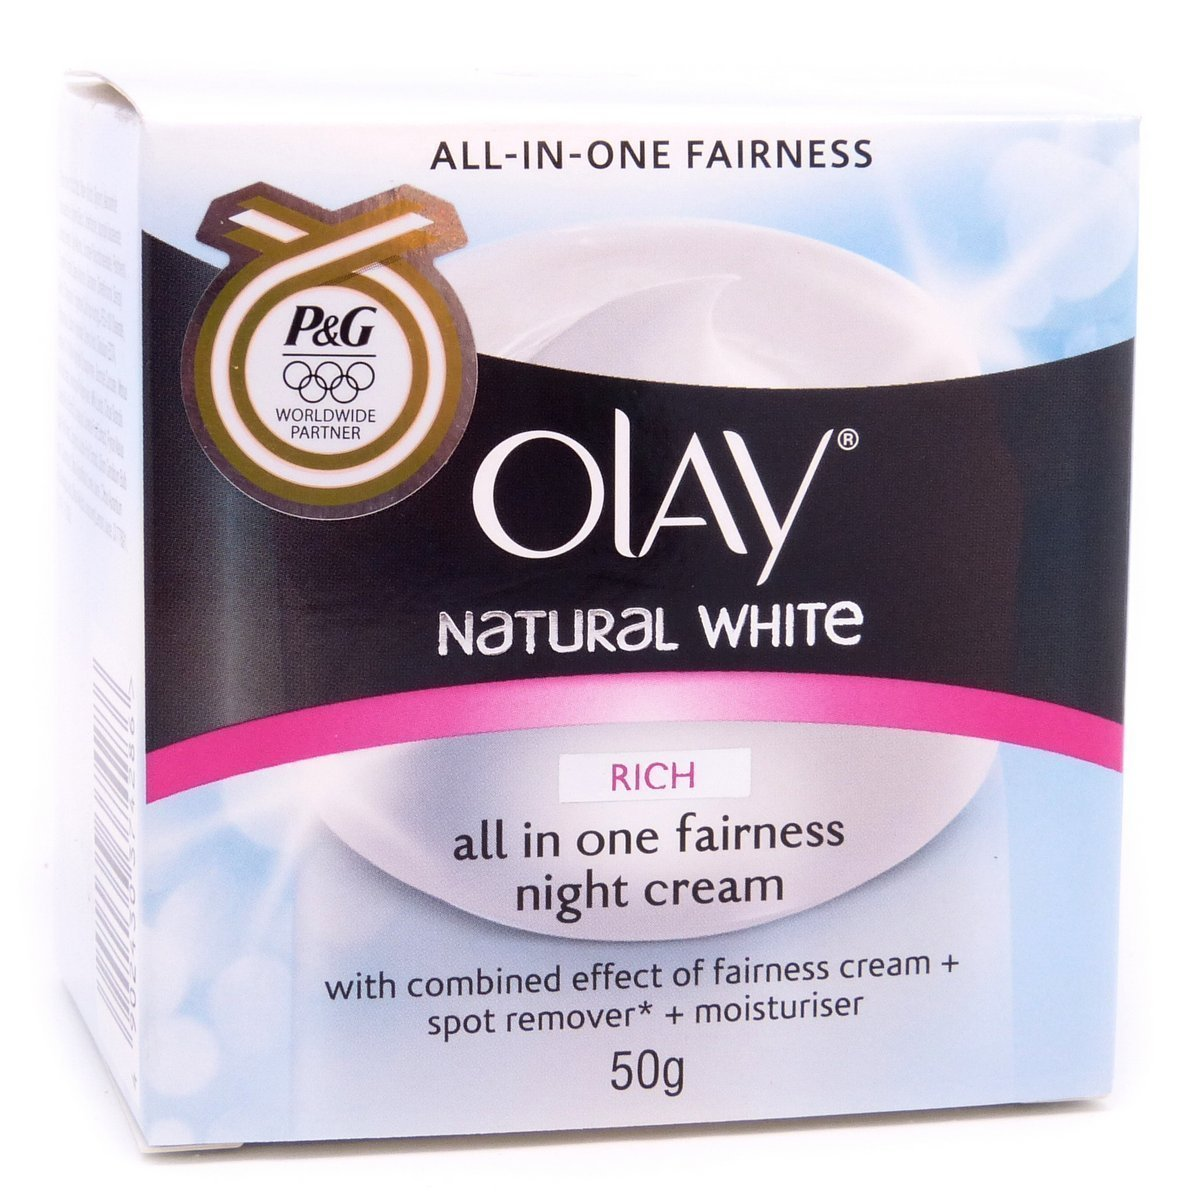 New Olay Natural White Night Cream Fairness 50 G New Made in Thailand